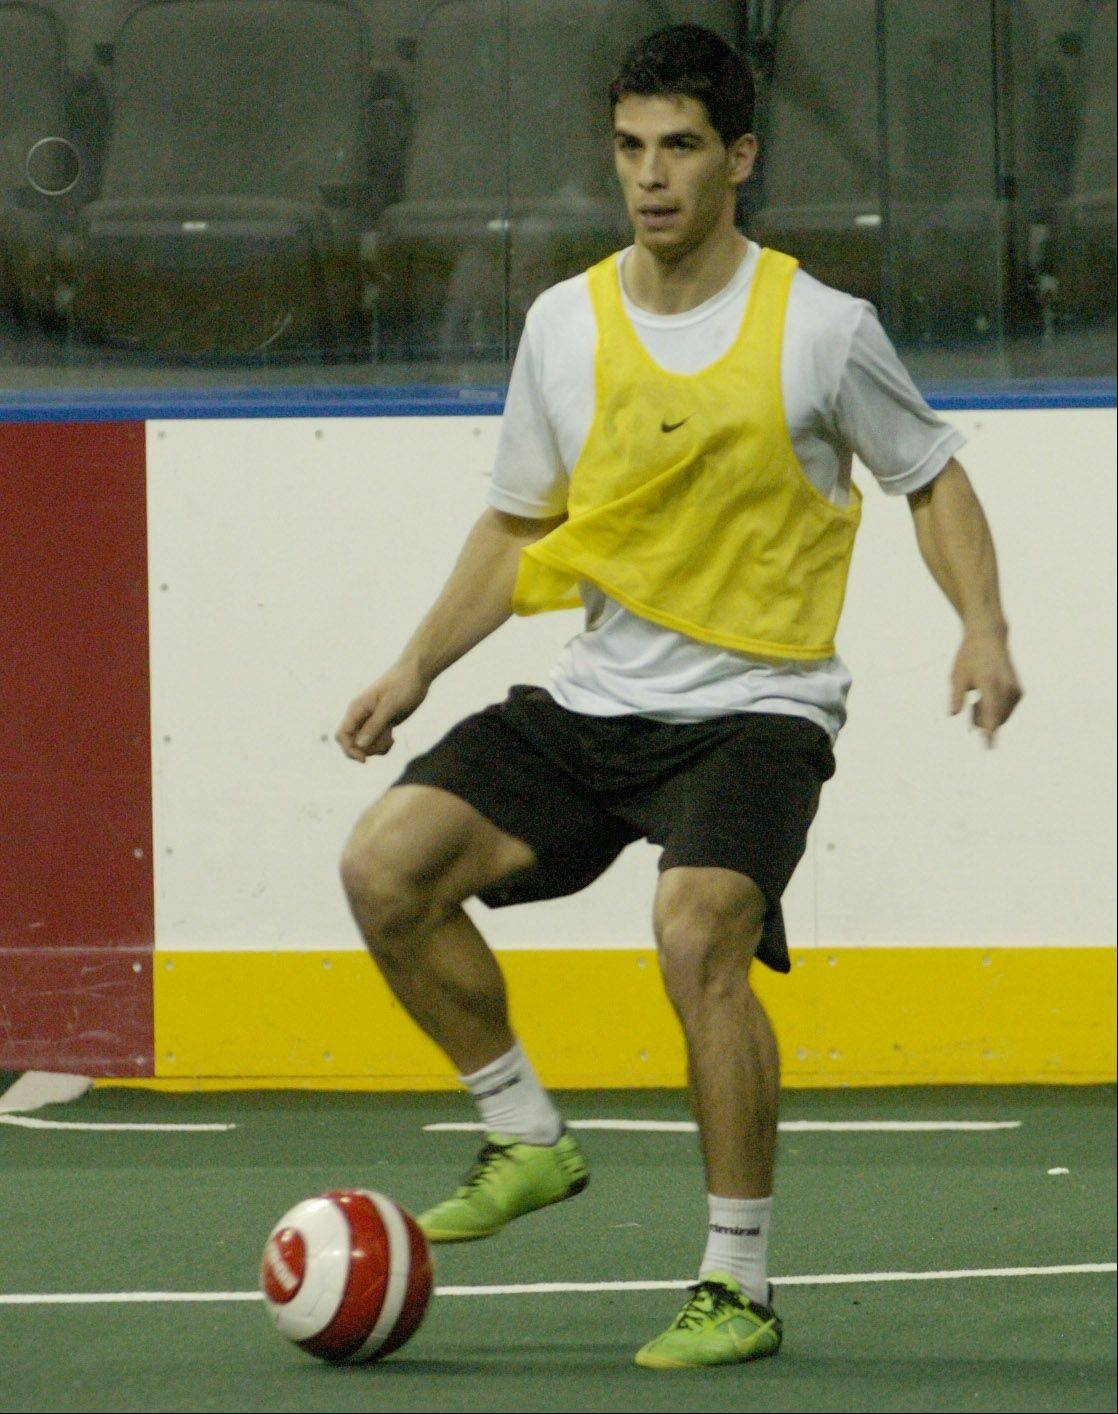 Christian Meza of Carpentersville works out with the Chicago Soul indoor soccer team at the Sears Centre.